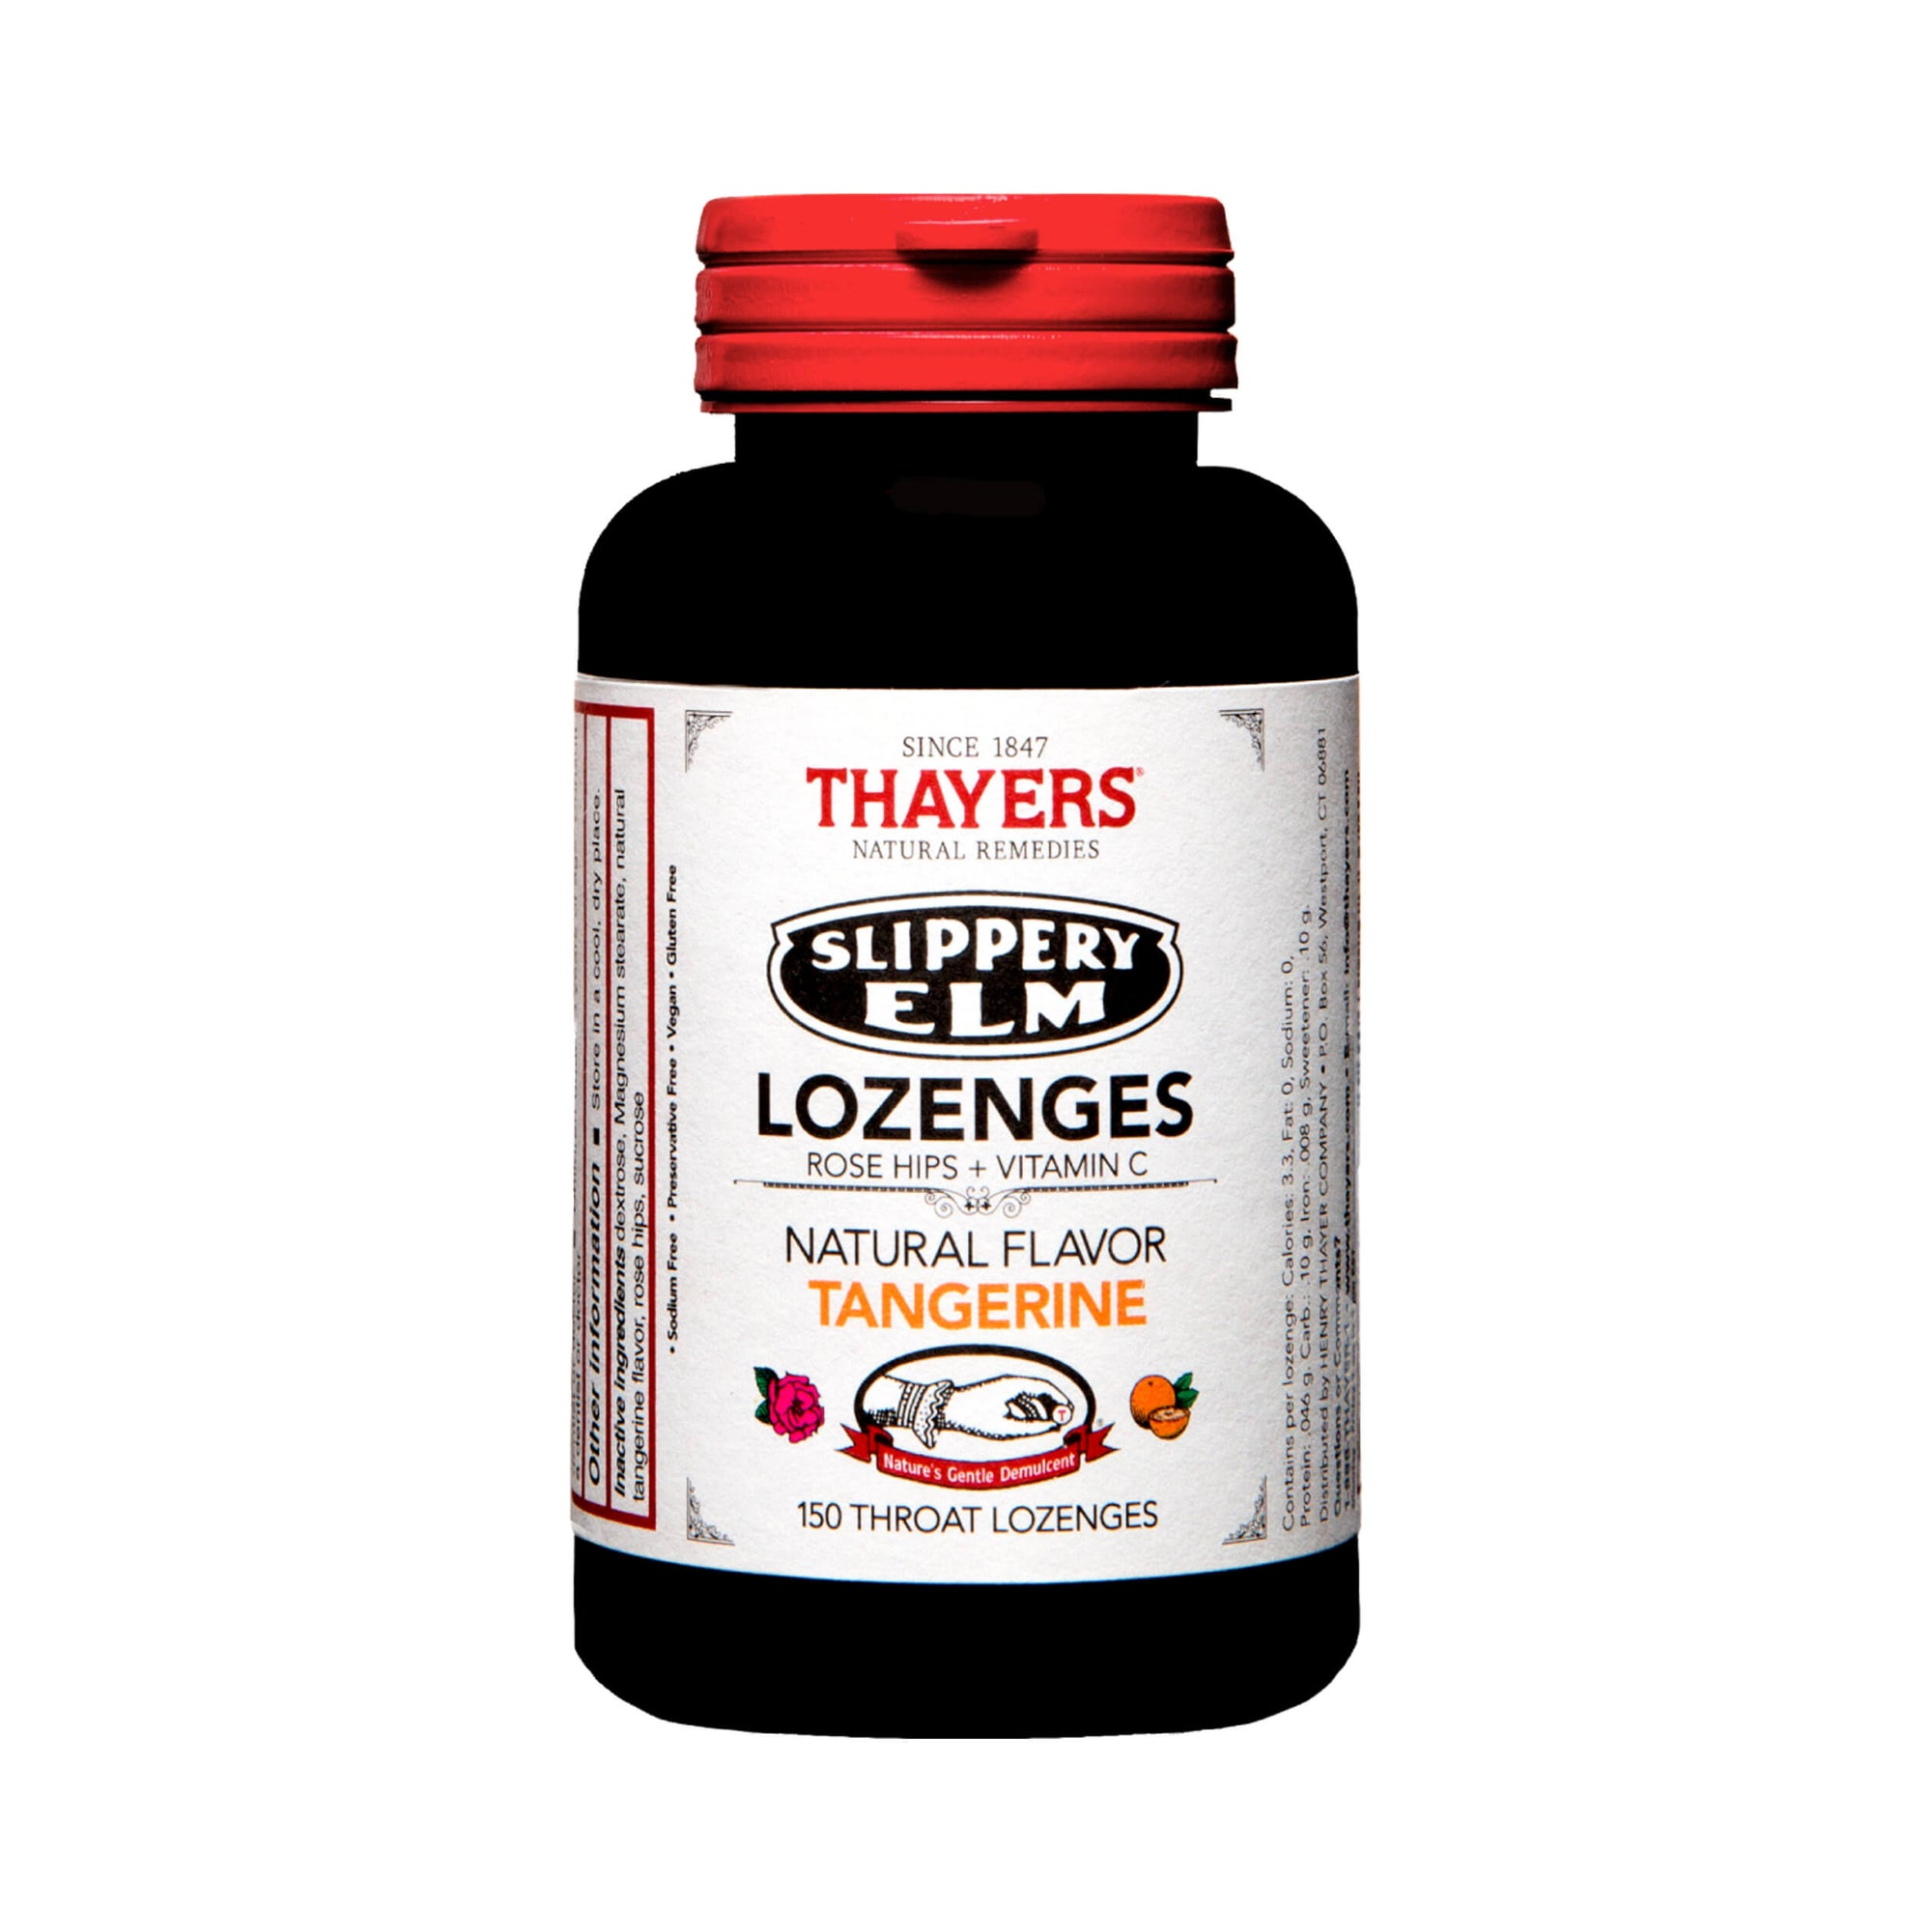 Thayers Slippery Elm Lozenges Rose Hips Tangerine 150 Lozenges